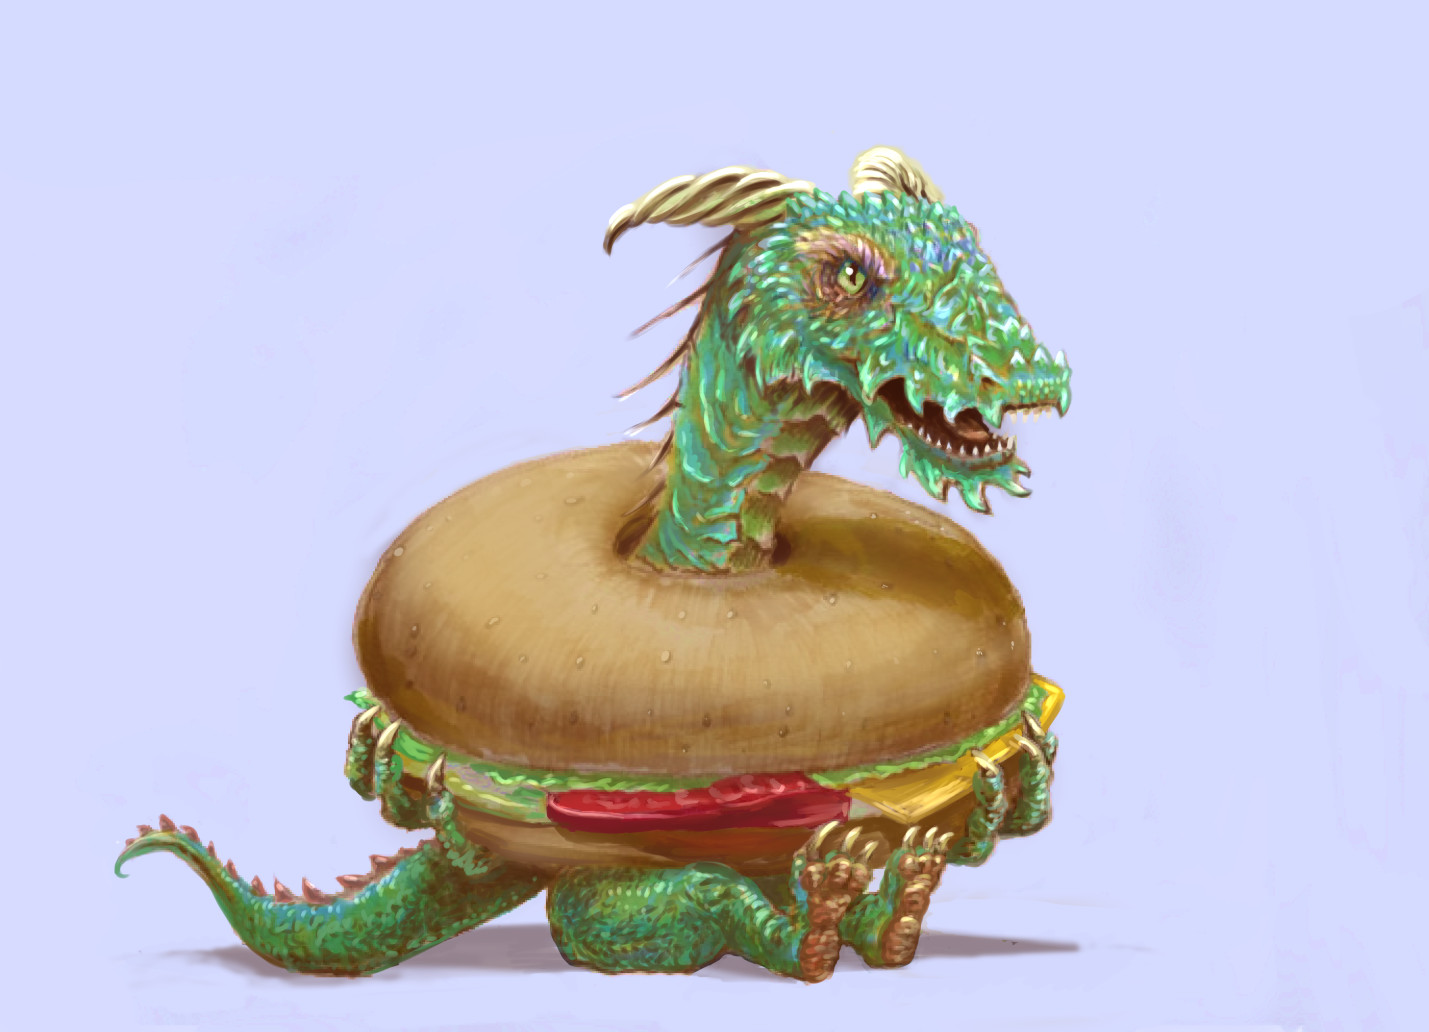 Larry, The Bagel Dragon